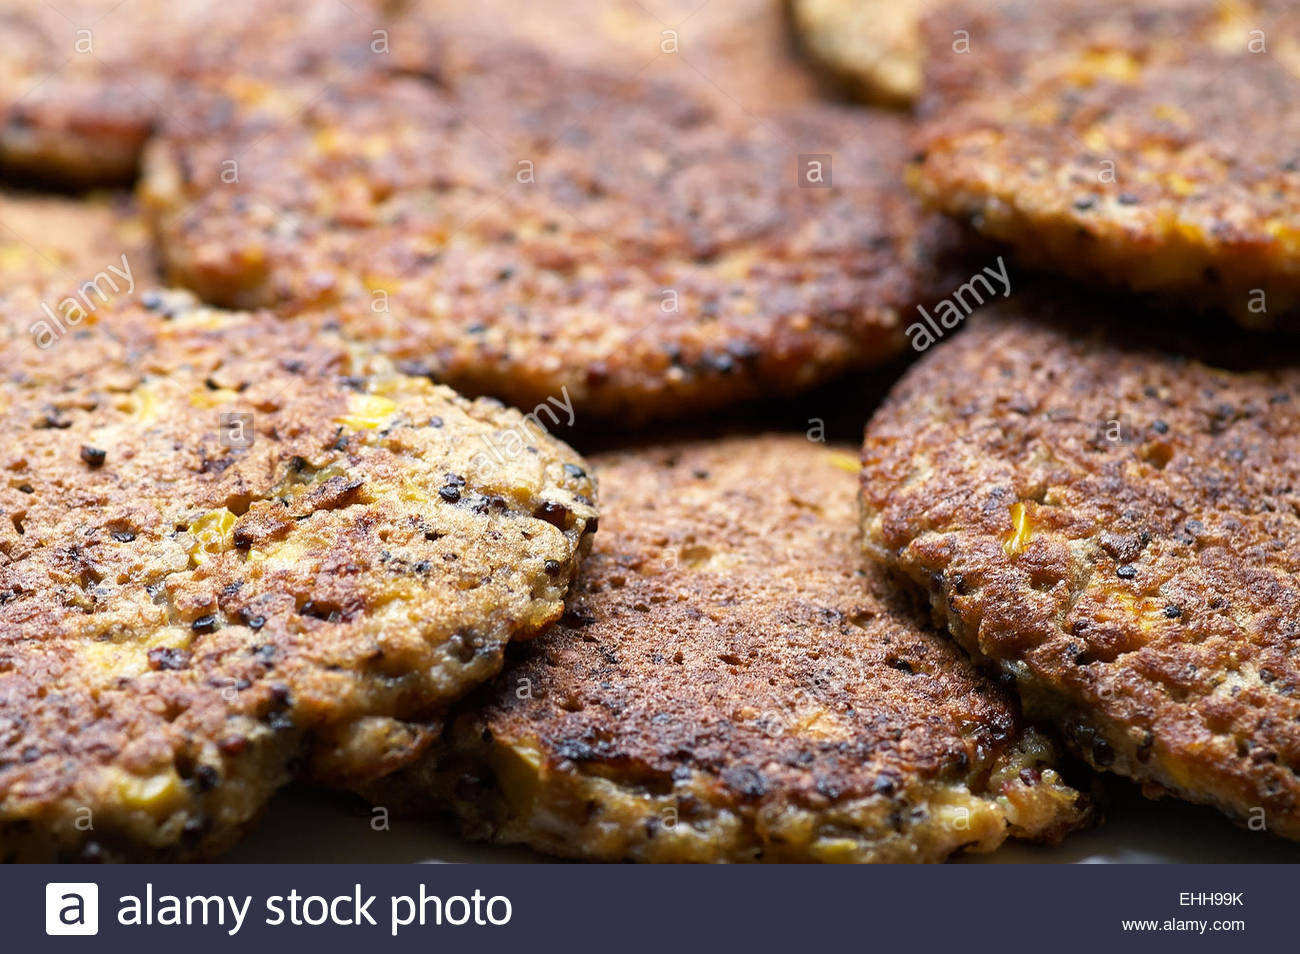 A pile of hot freshly-cooked, golden-brown, corn and quinoa fritters; ready to serve and eat - yum! Comfort food, - Stock Image